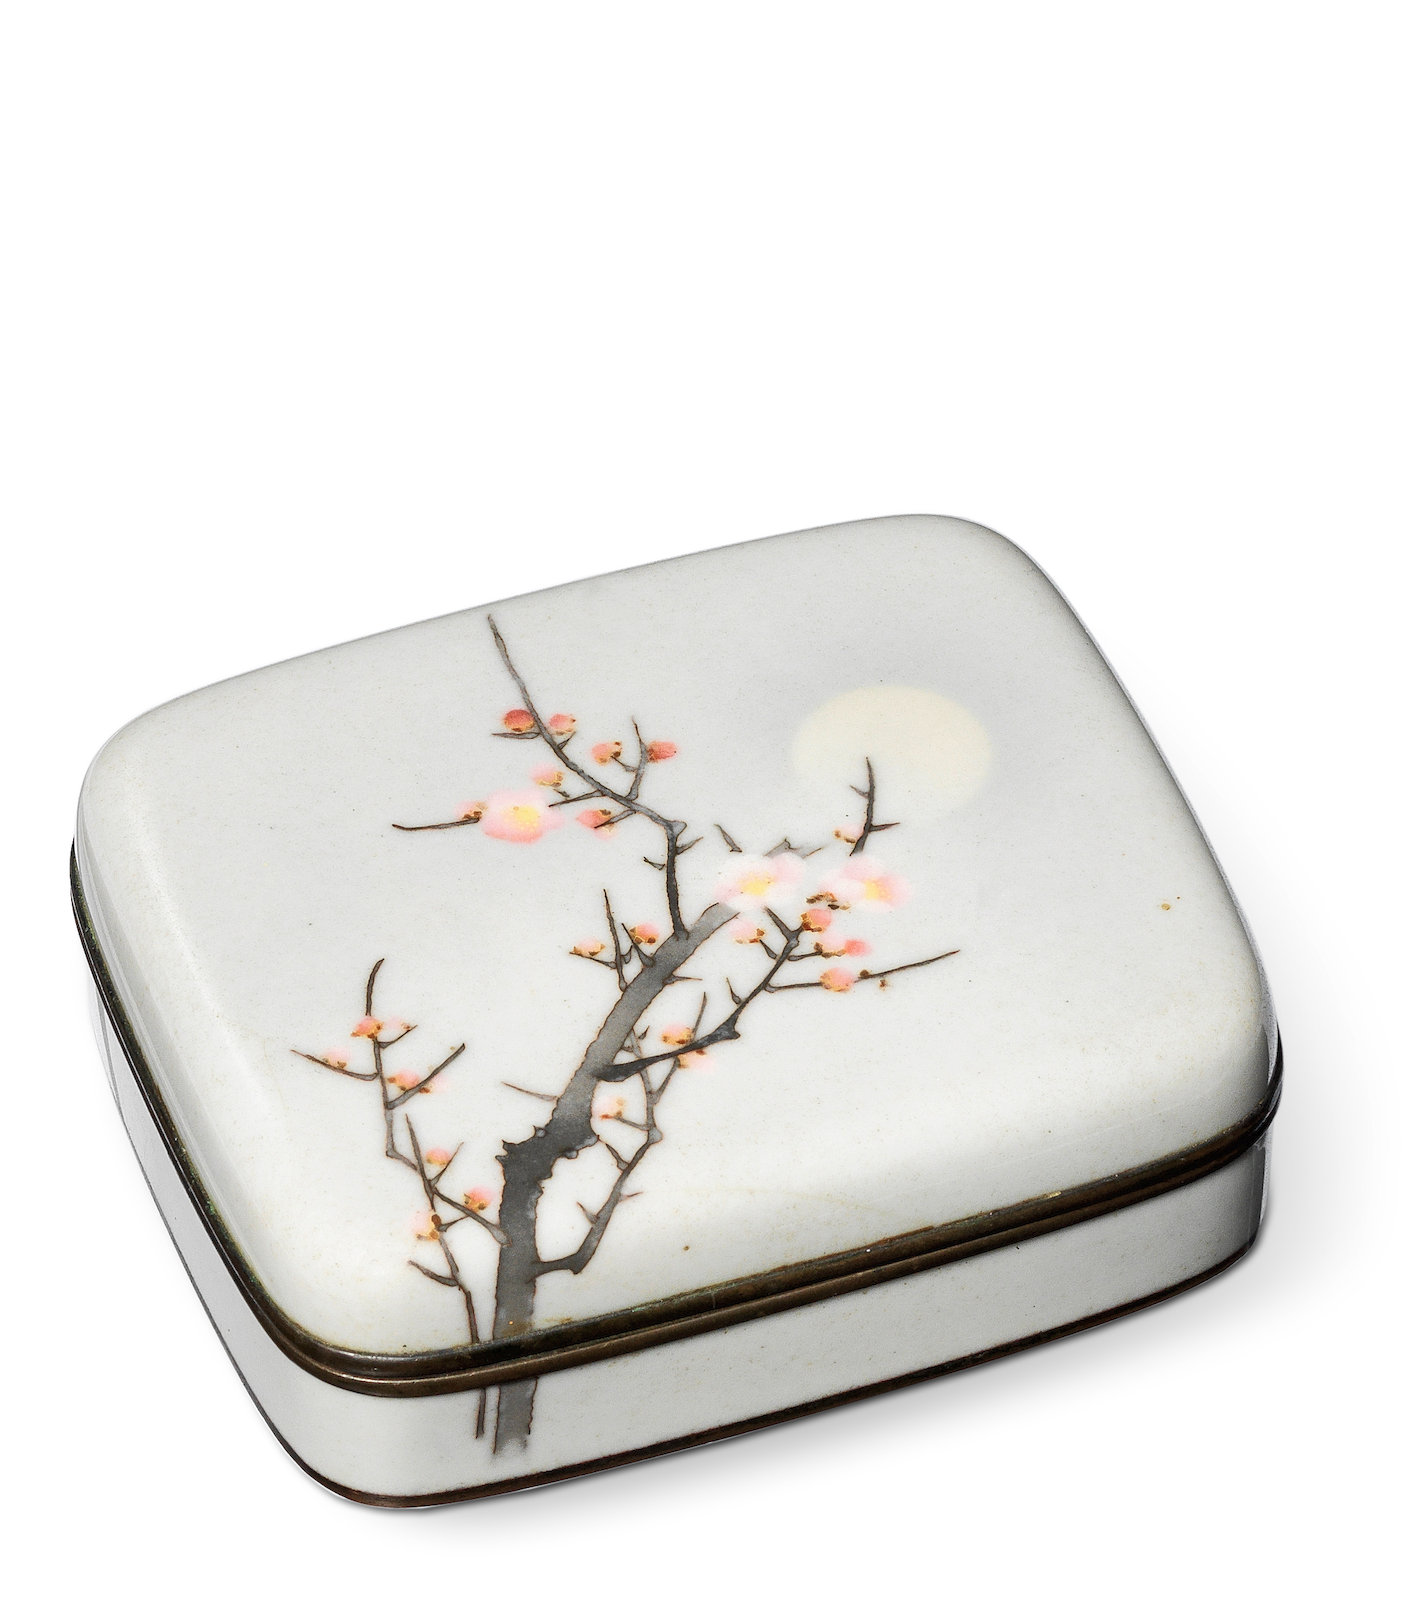 A CLOISONNÉ-ENAMEL ROUNDED SQUARE BOX AND COVER, By Namikawa Sosuke (1847-1910), Meiji era (1868-1912), late 19th/early 20th century, 3.2cm x 9.7cm (1¼in x 3¾in).